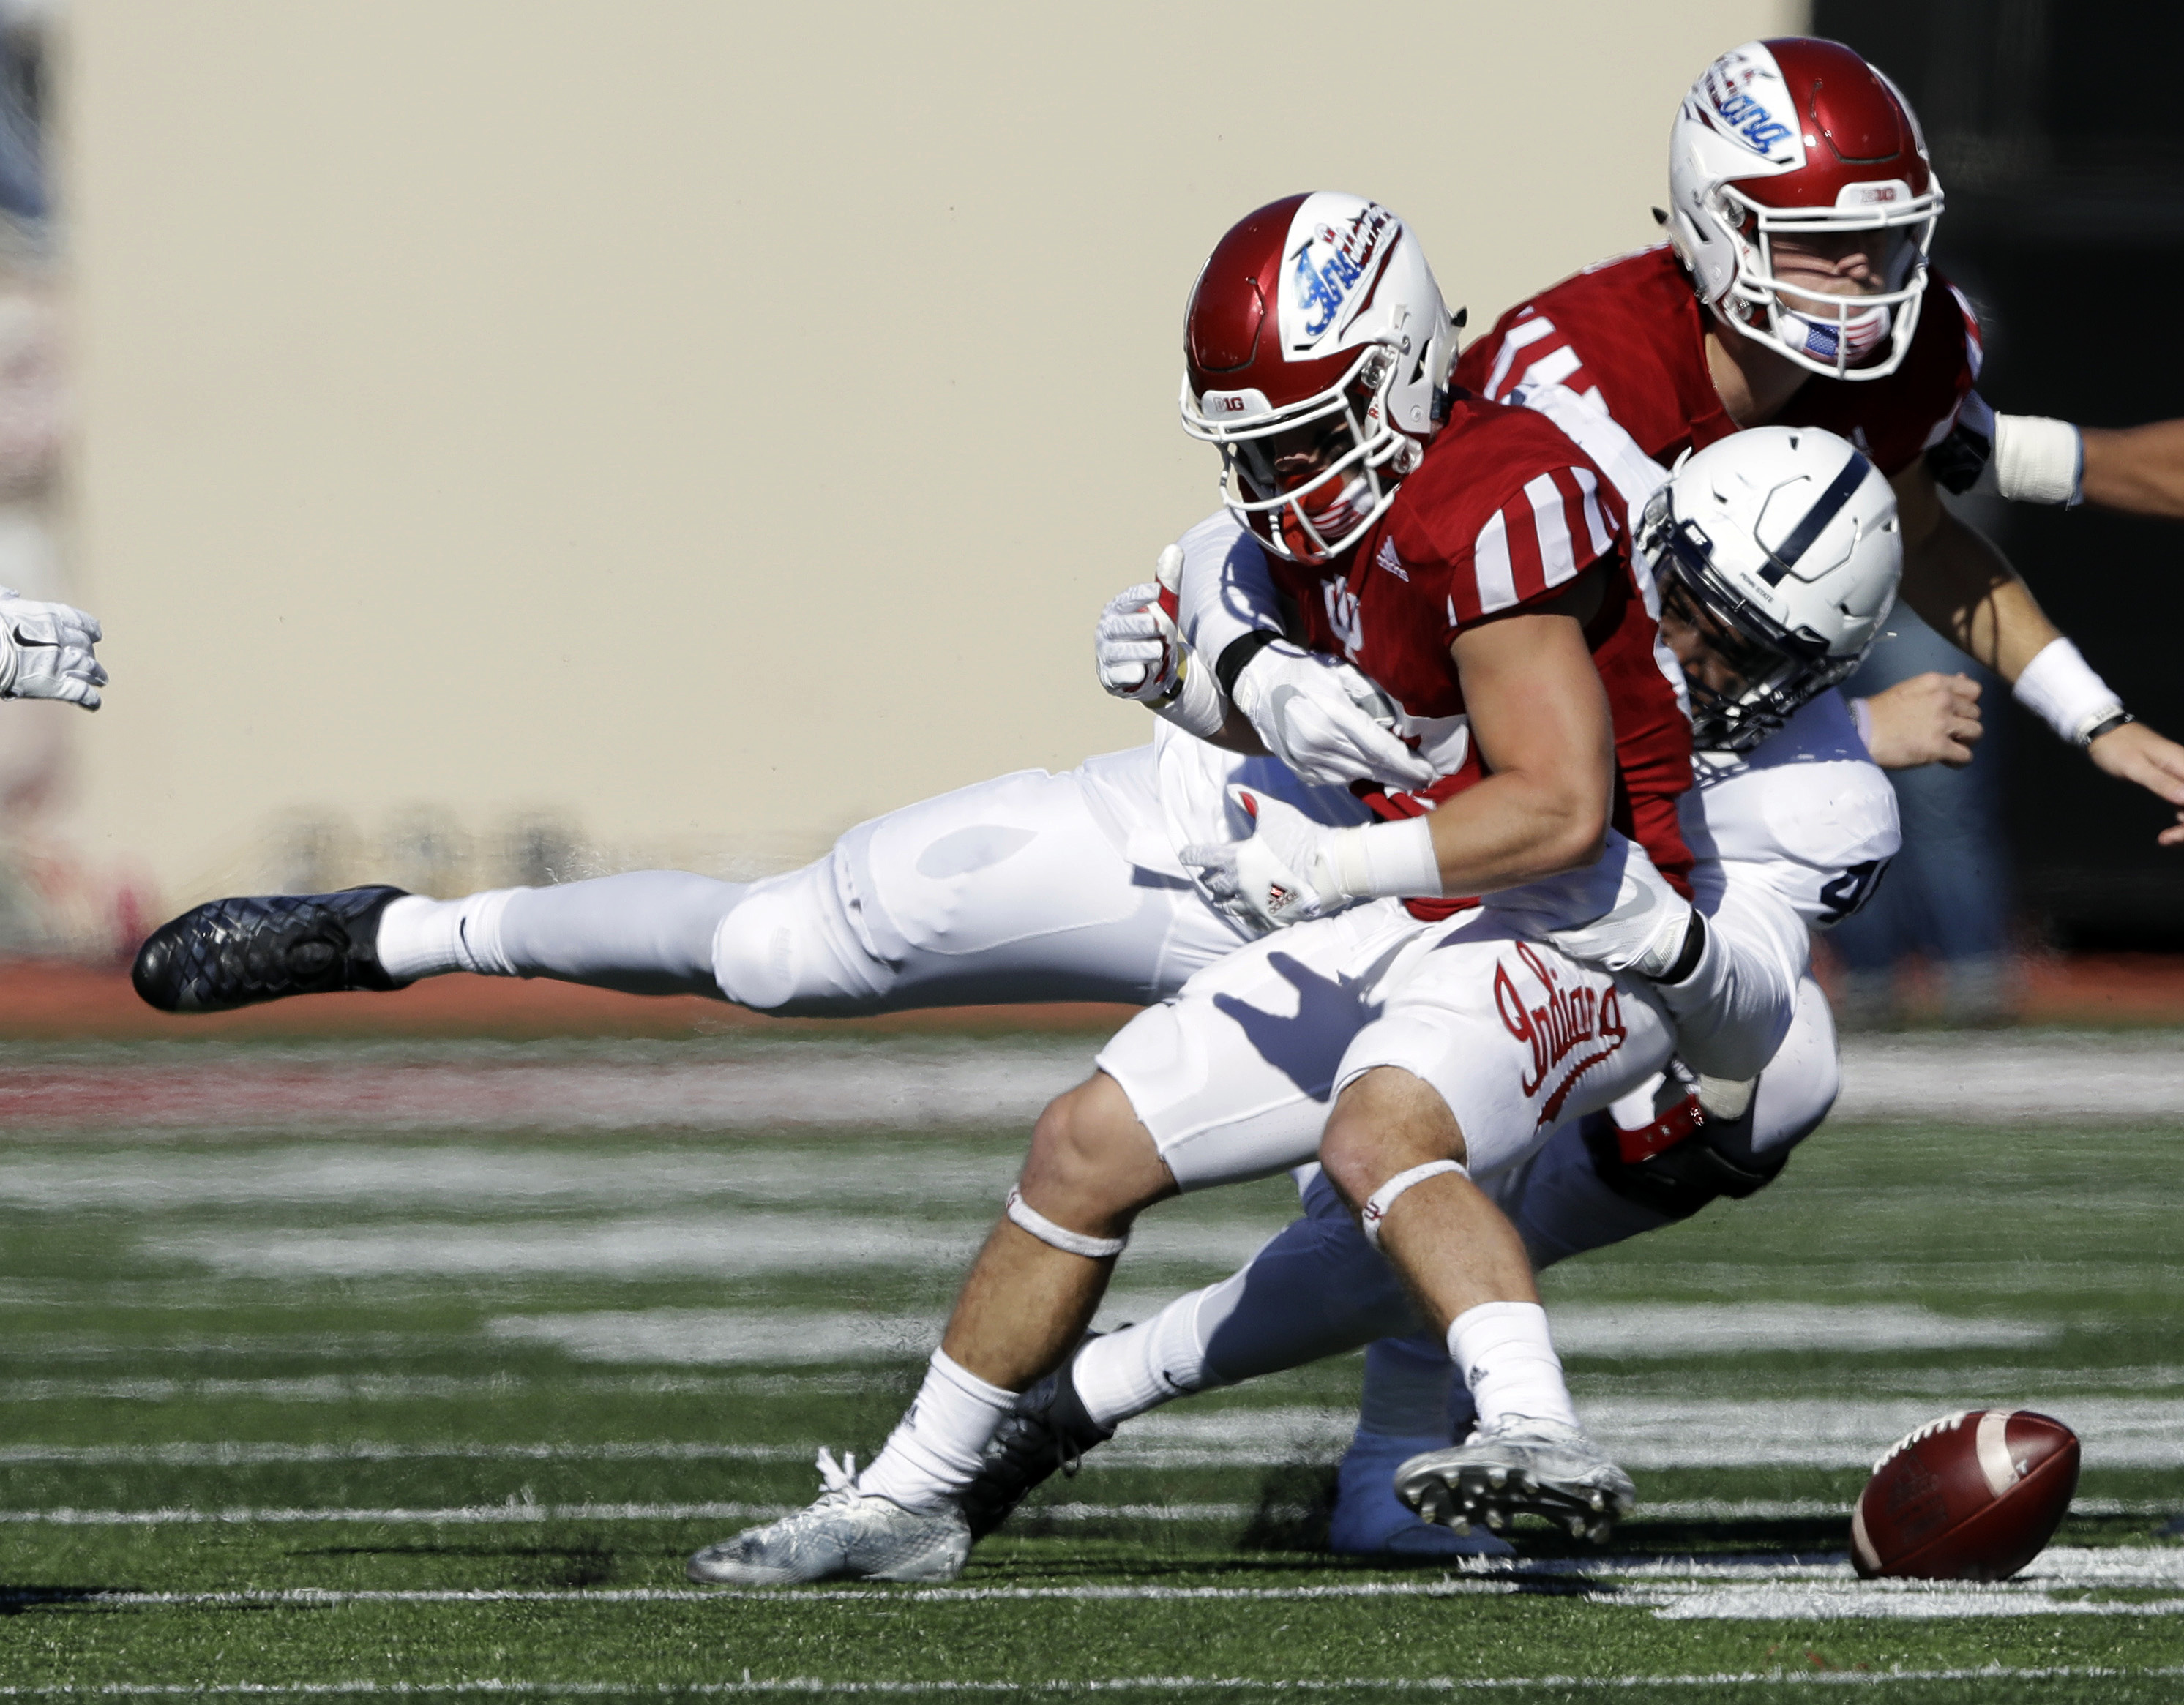 Indiana's Mitchell Paige fumbles after being hit by Penn State's Shareef Miller during the first half of an NCAA college football game Saturday, Nov. 12, 2016, in Bloomington, Ind. (AP Photo/Darron Cummings)